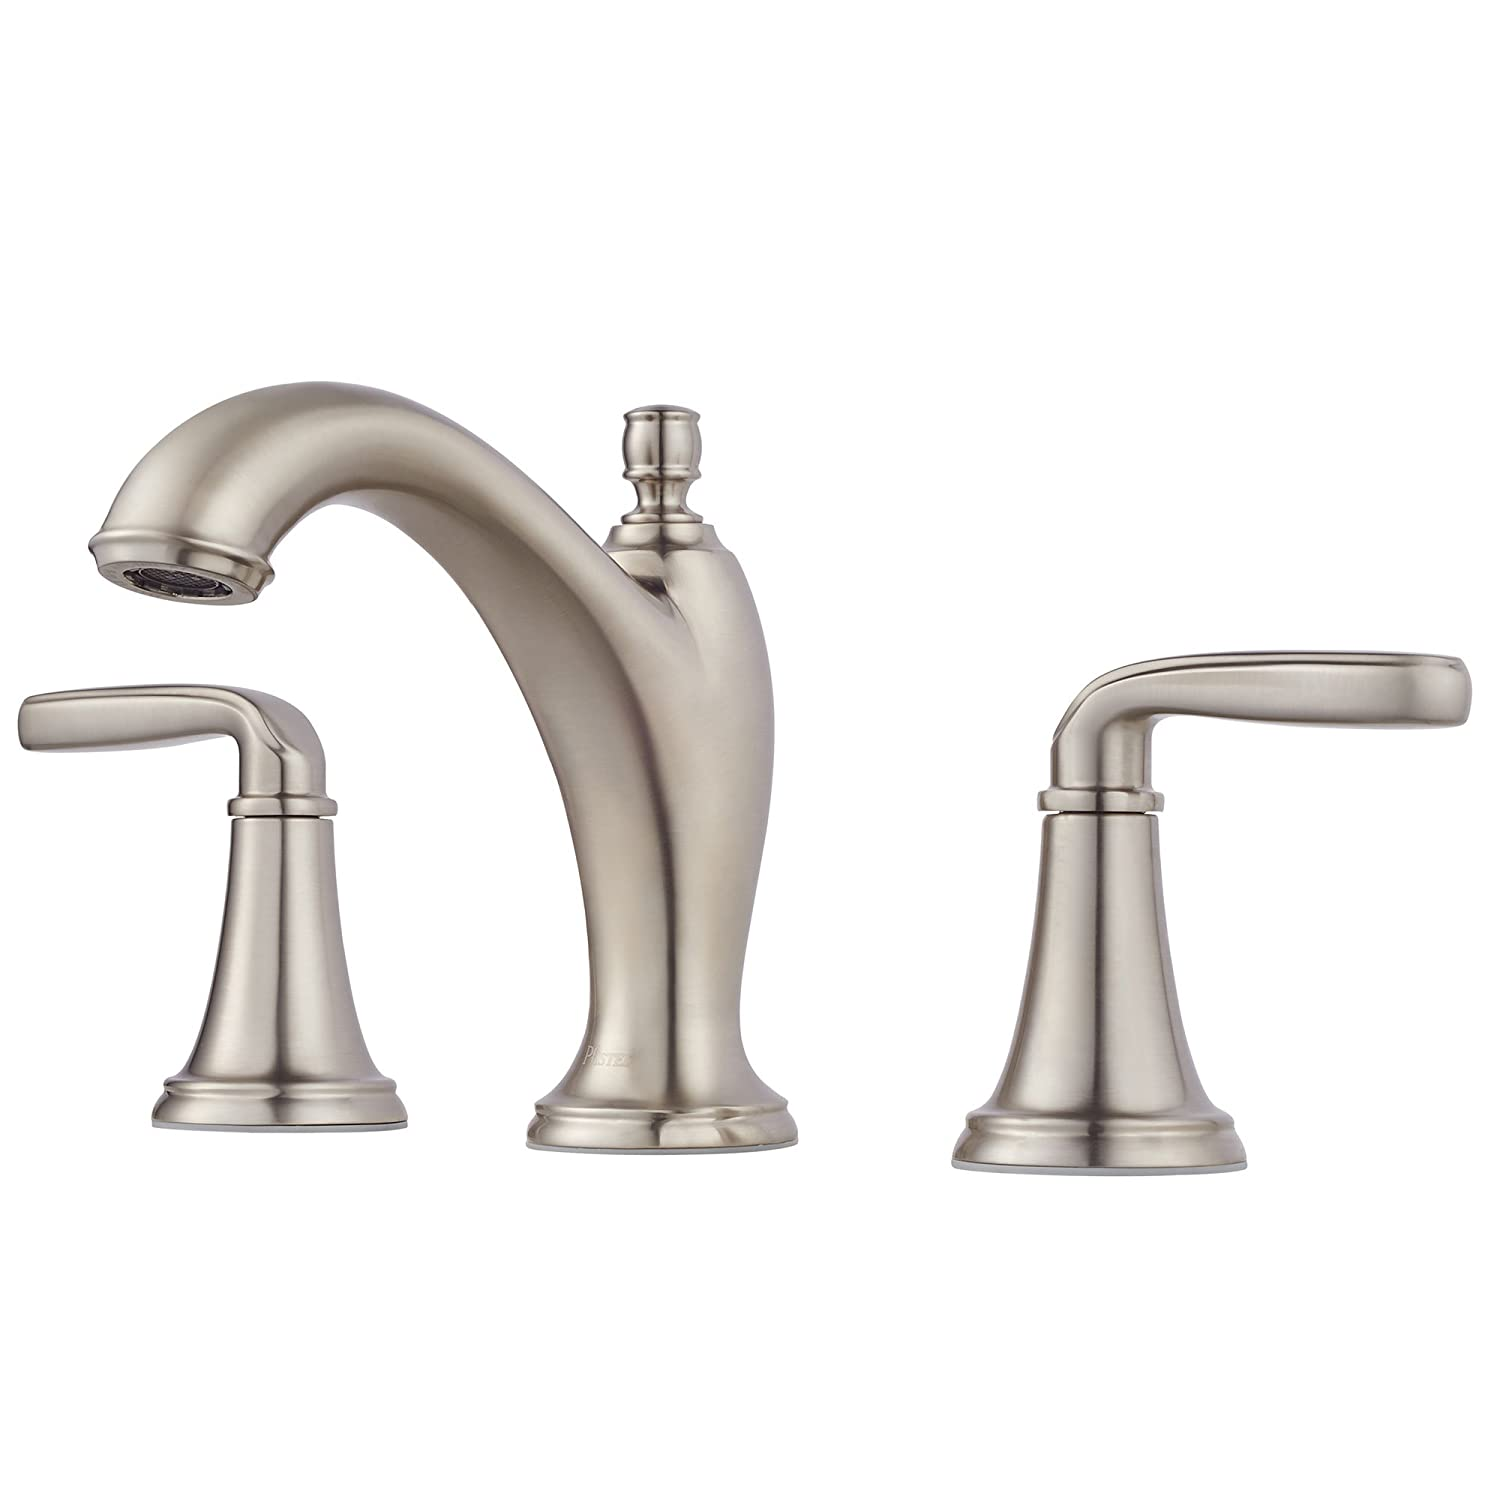 "Pfister LG49-MG0K Northcott 8"" Widespread Bathroom Faucet in Brushed Nickel"